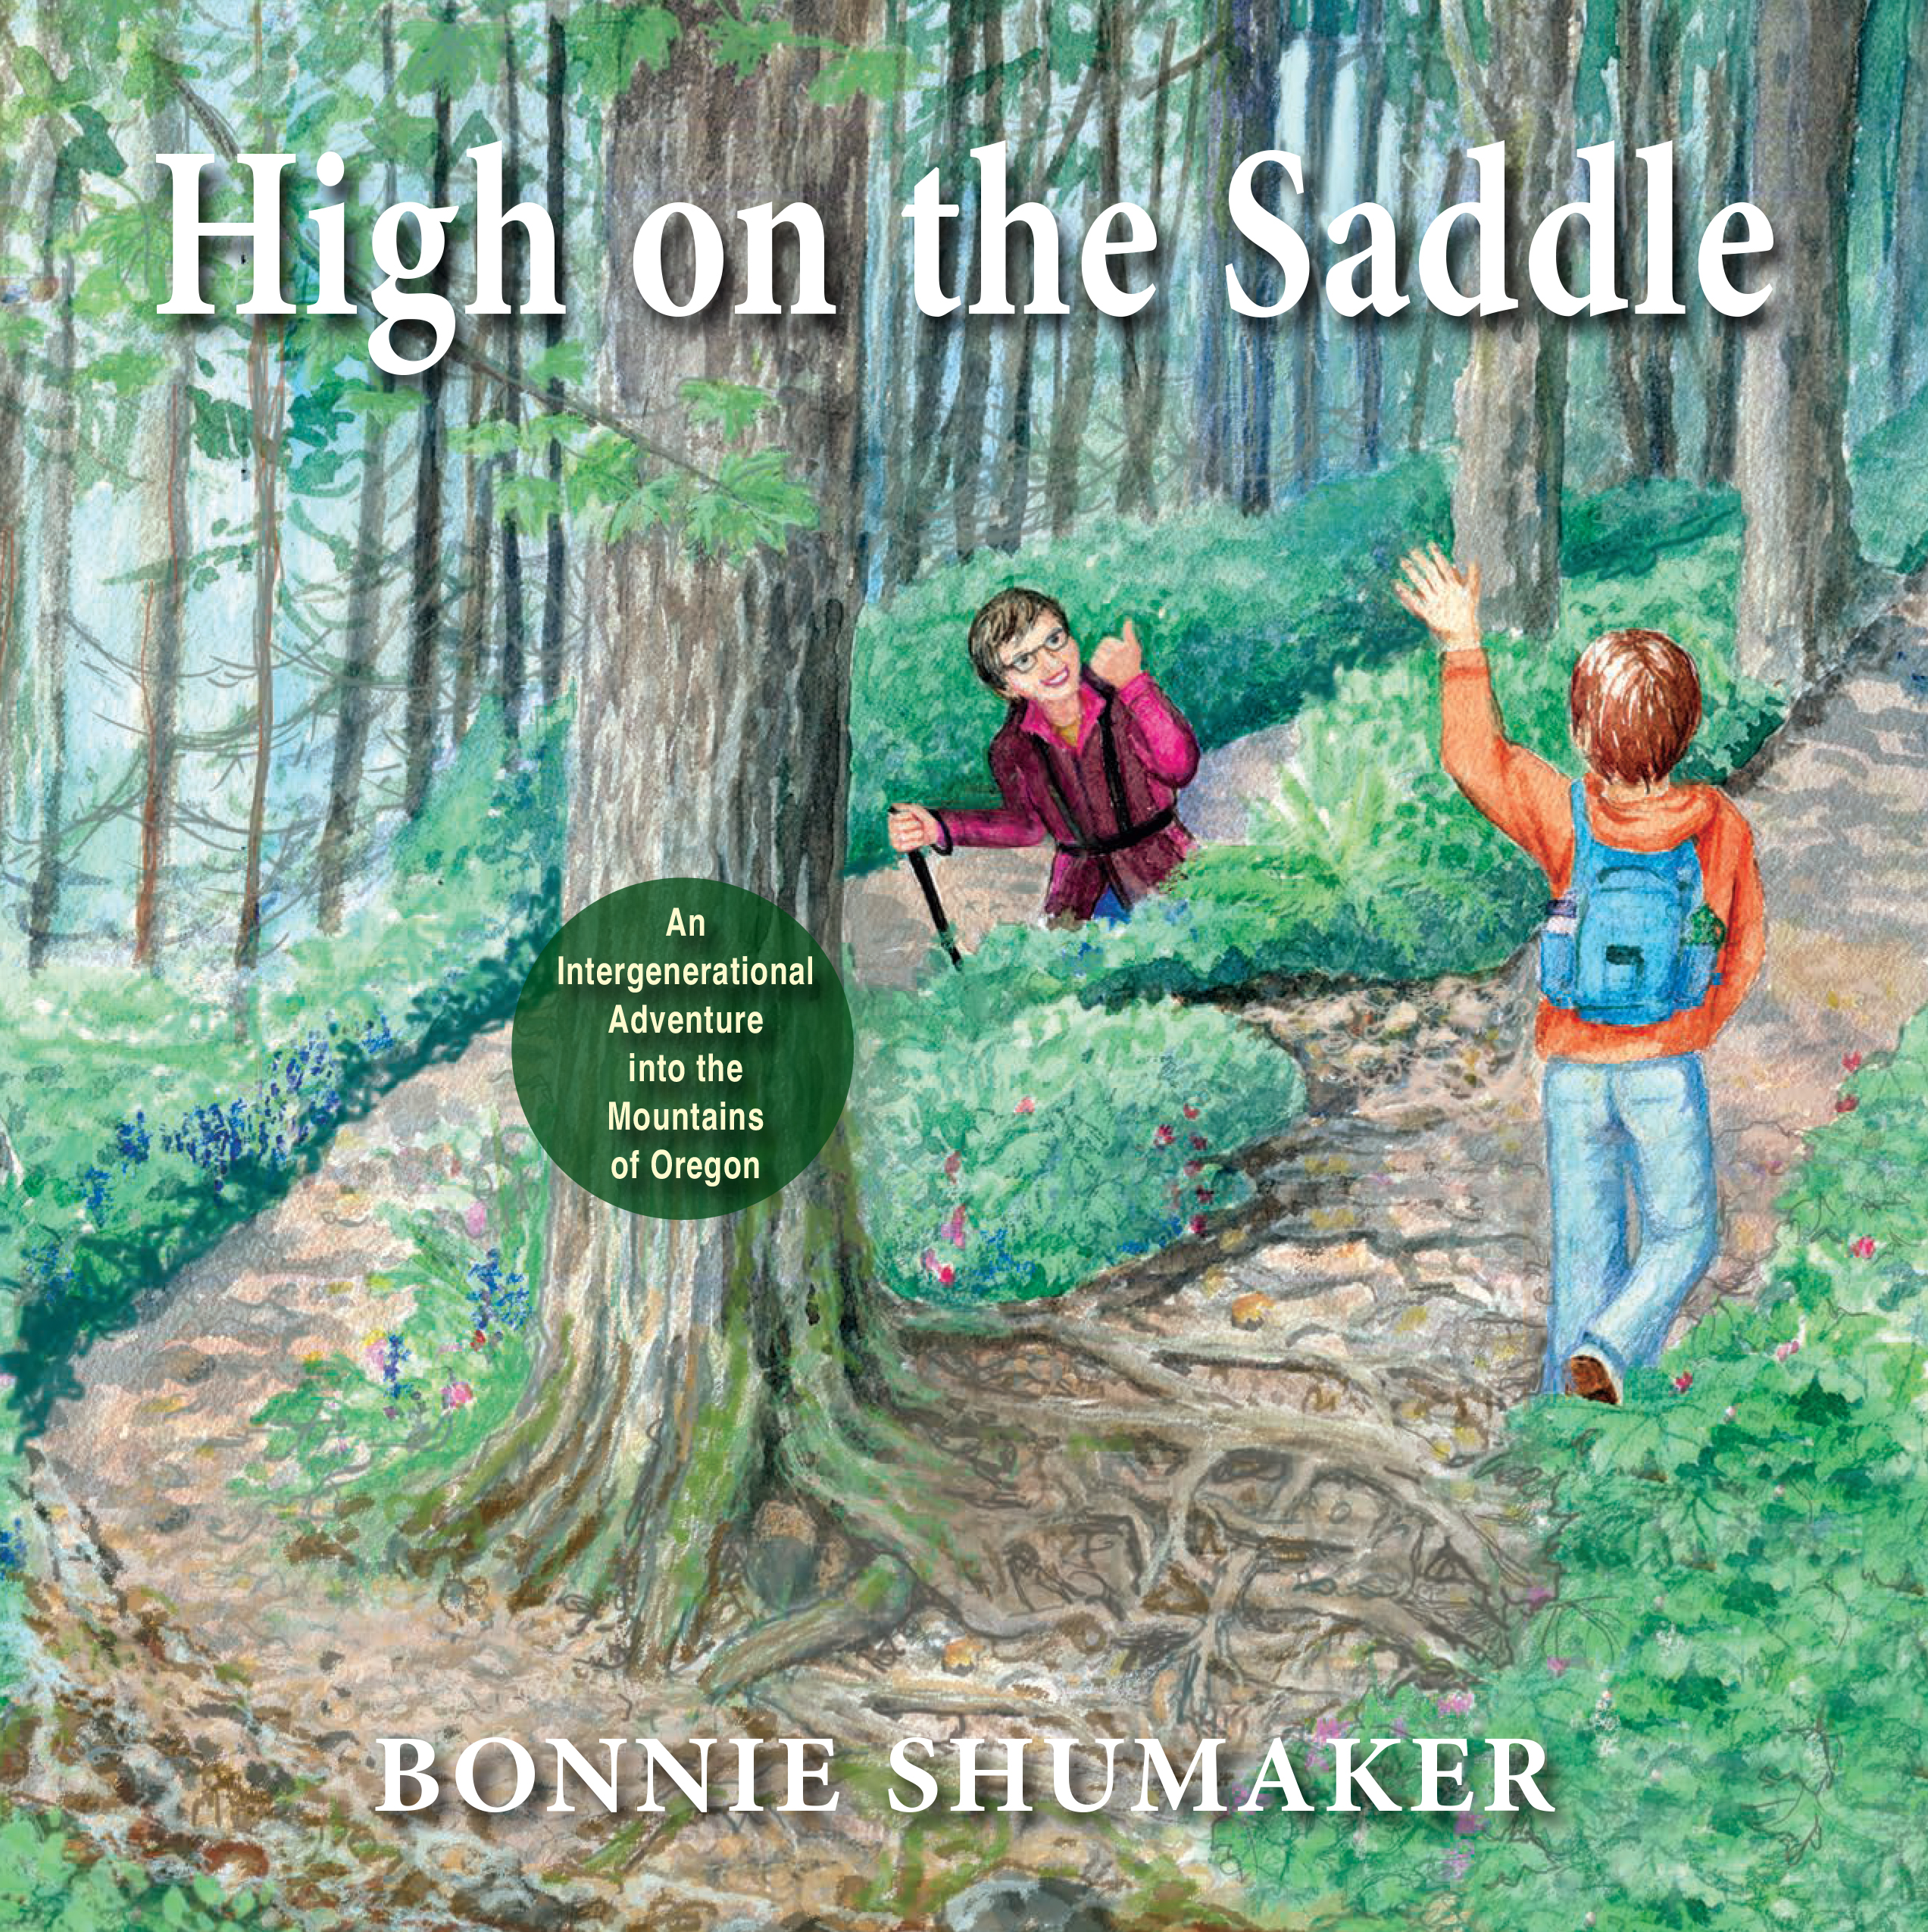 High on the Saddle Image